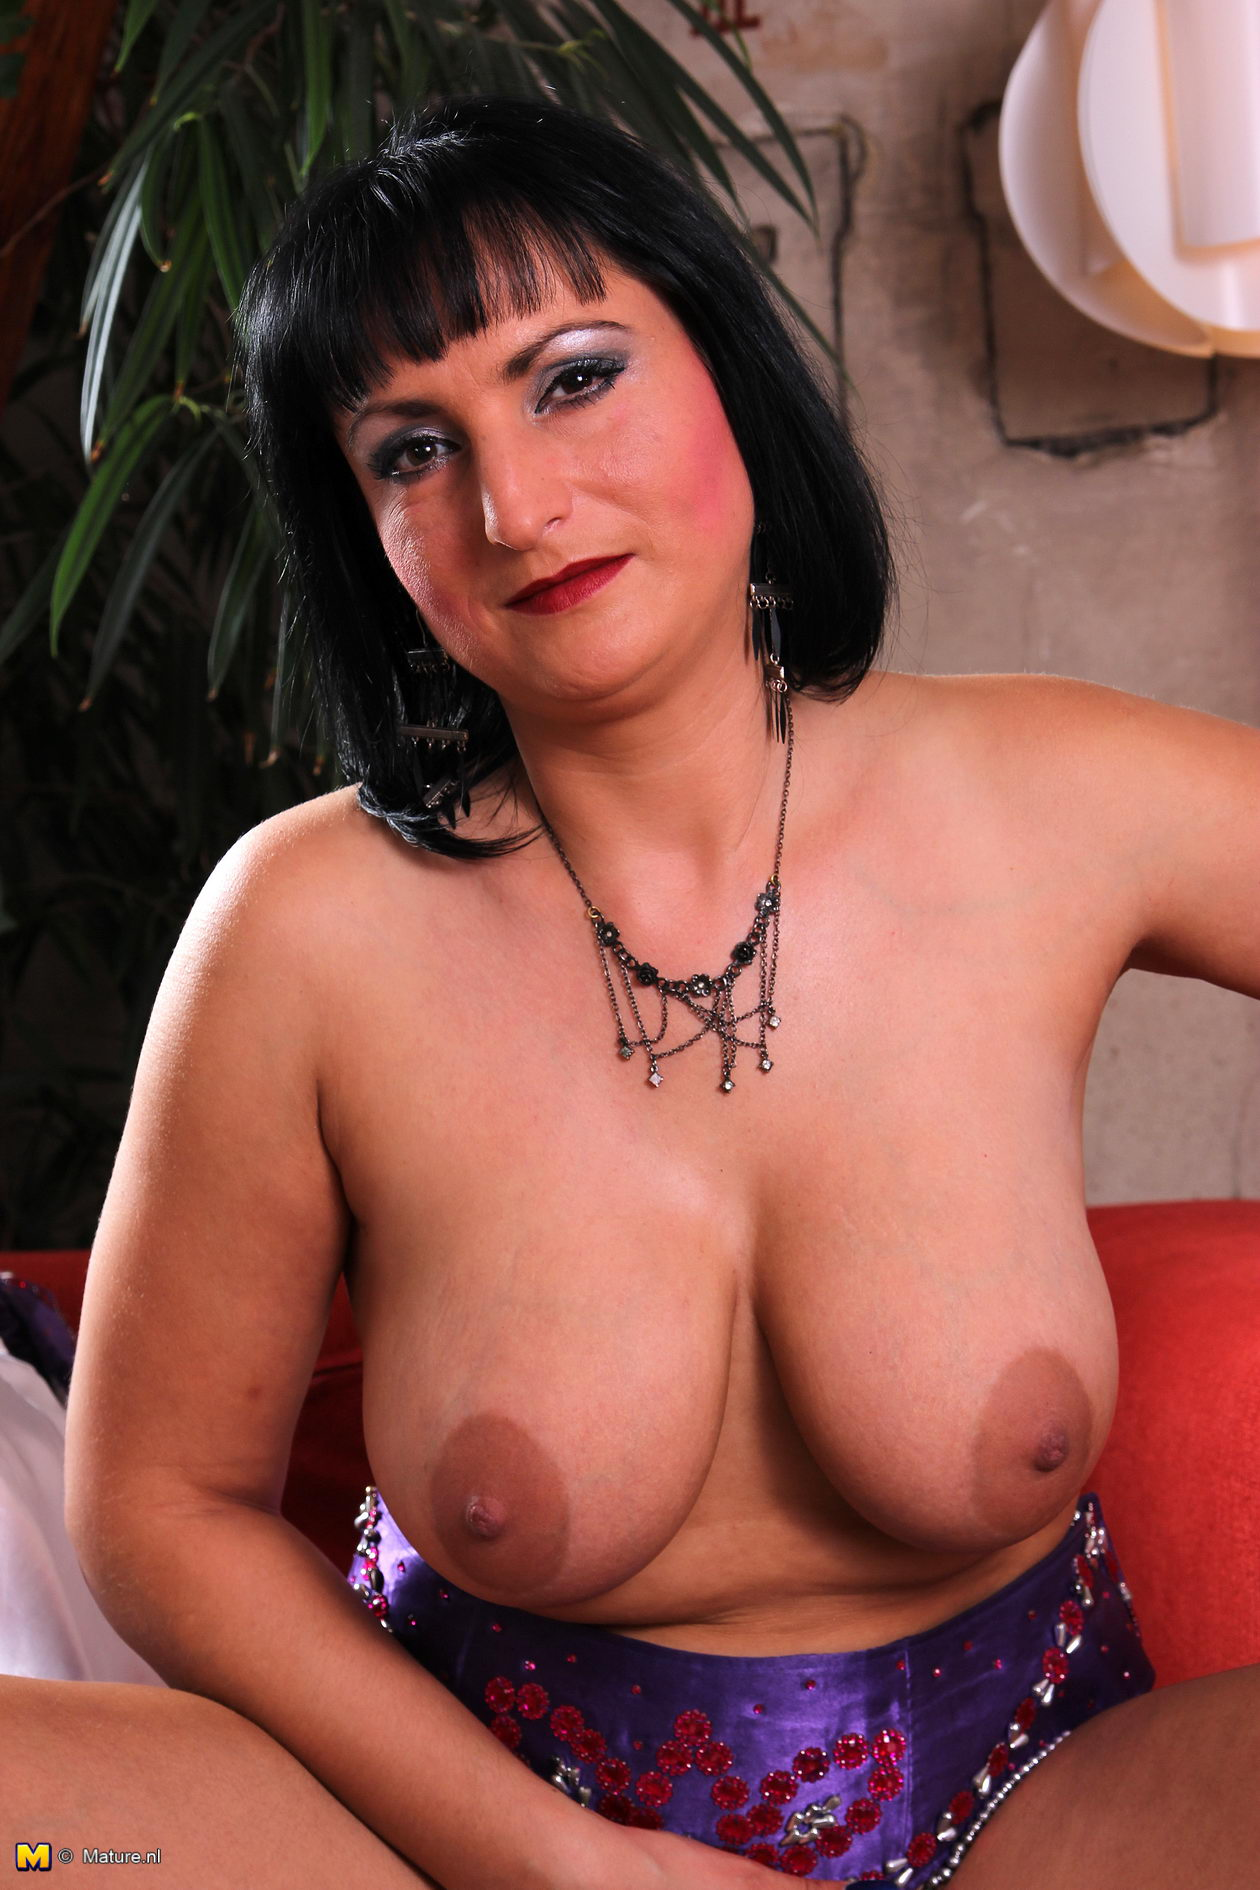 Blonde MILF in Stockings Shows off Her Lovely Big Tits